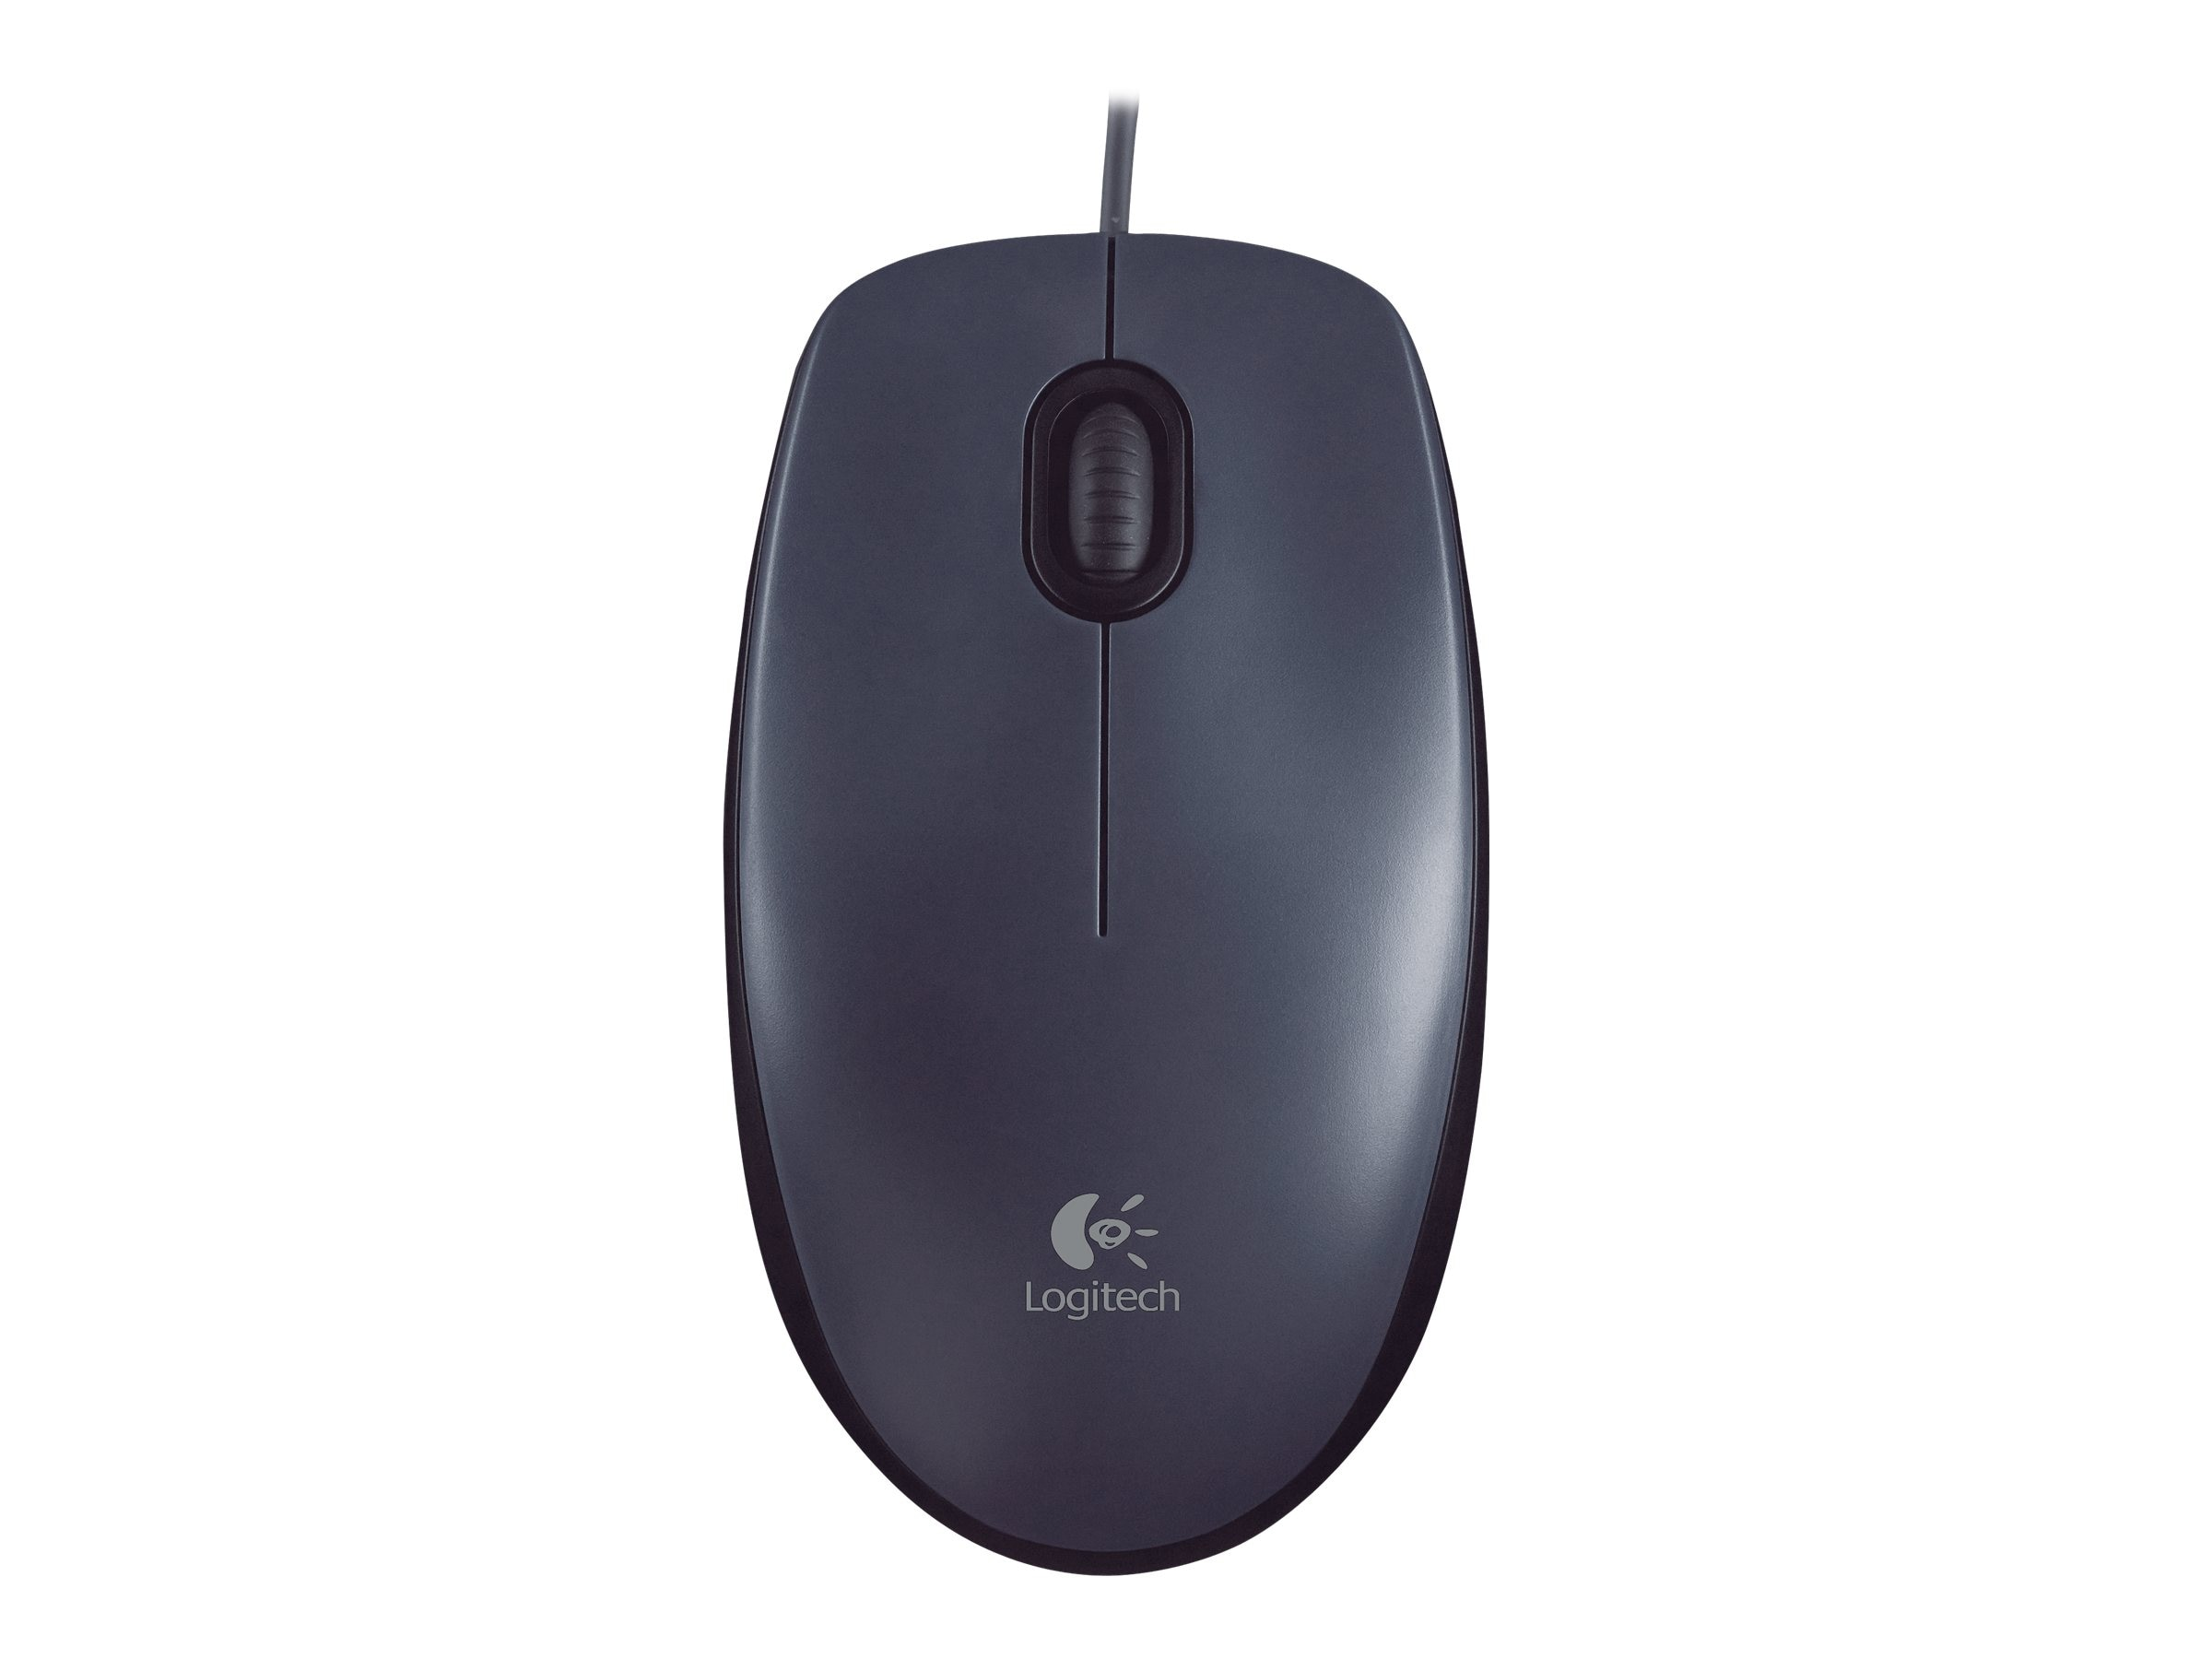 Logitech M100 USB Optical Mouse, Black, 910-001601, 11021051, Mice & Cursor Control Devices